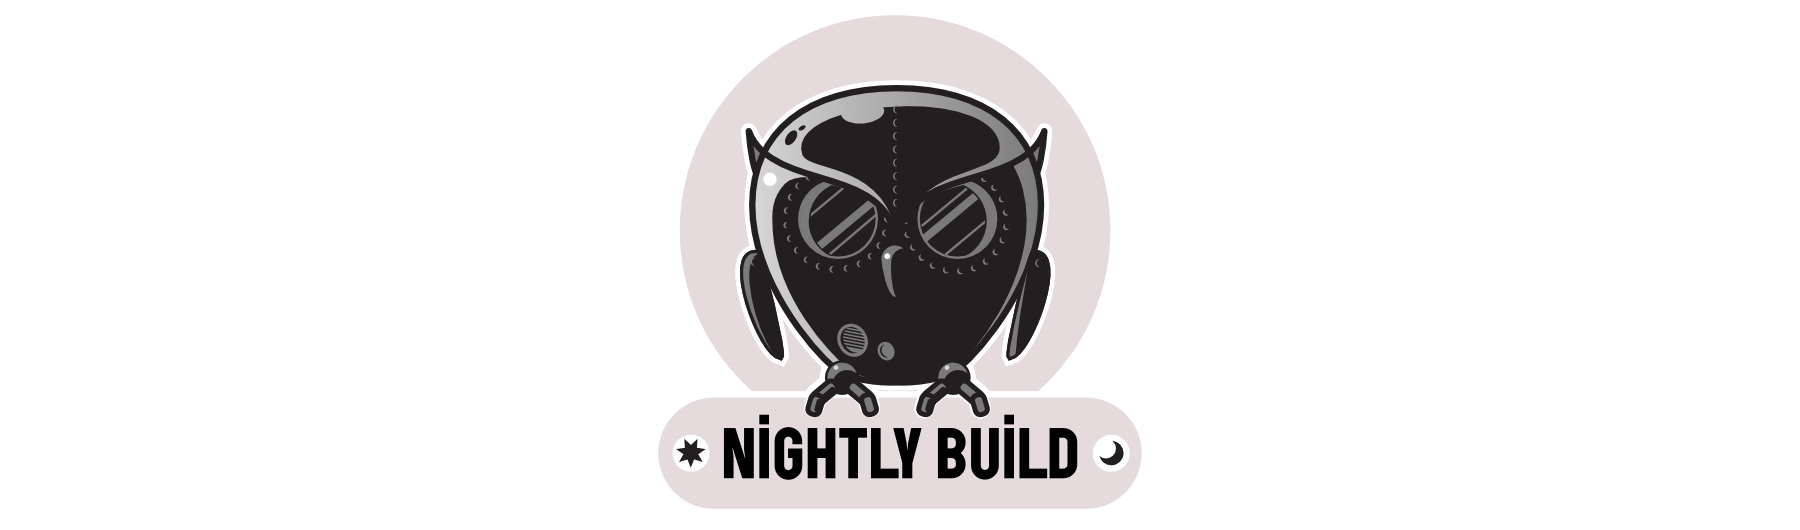 NightlyBuild 2017